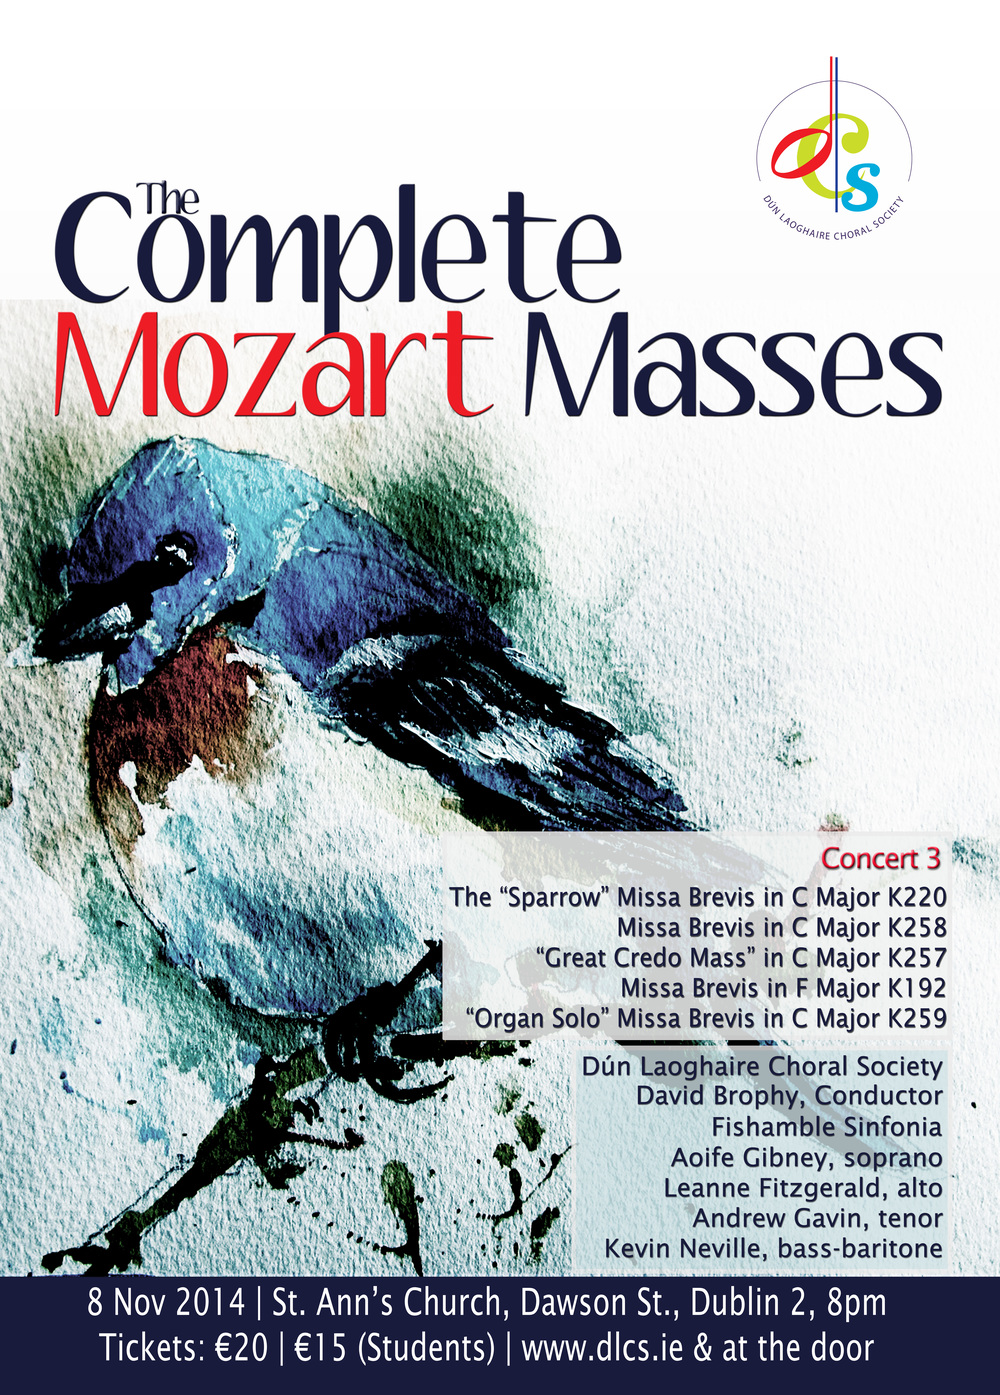 Complete Mozart Masses Concert 3, 8th November 2014